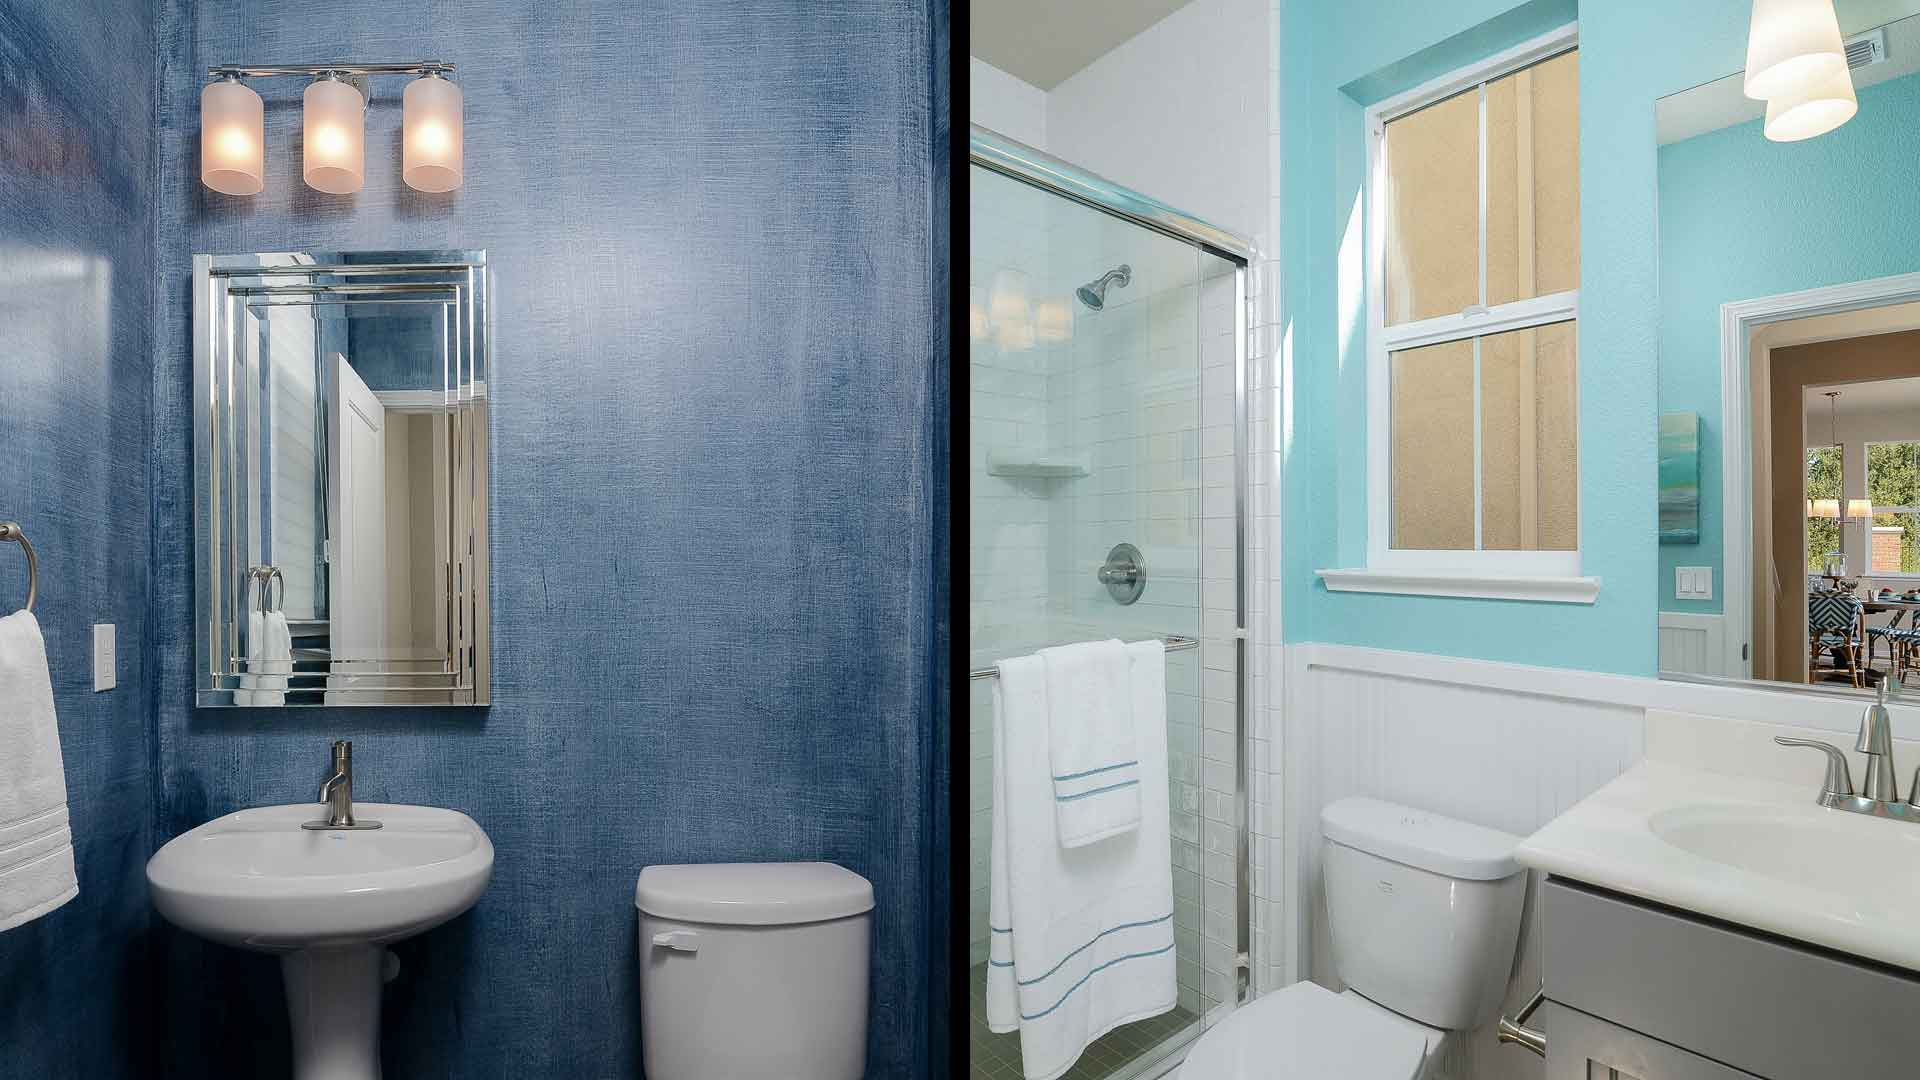 Blue Bathrooms Pictures Homes With Blue Bathrooms Sell For More Study Finds